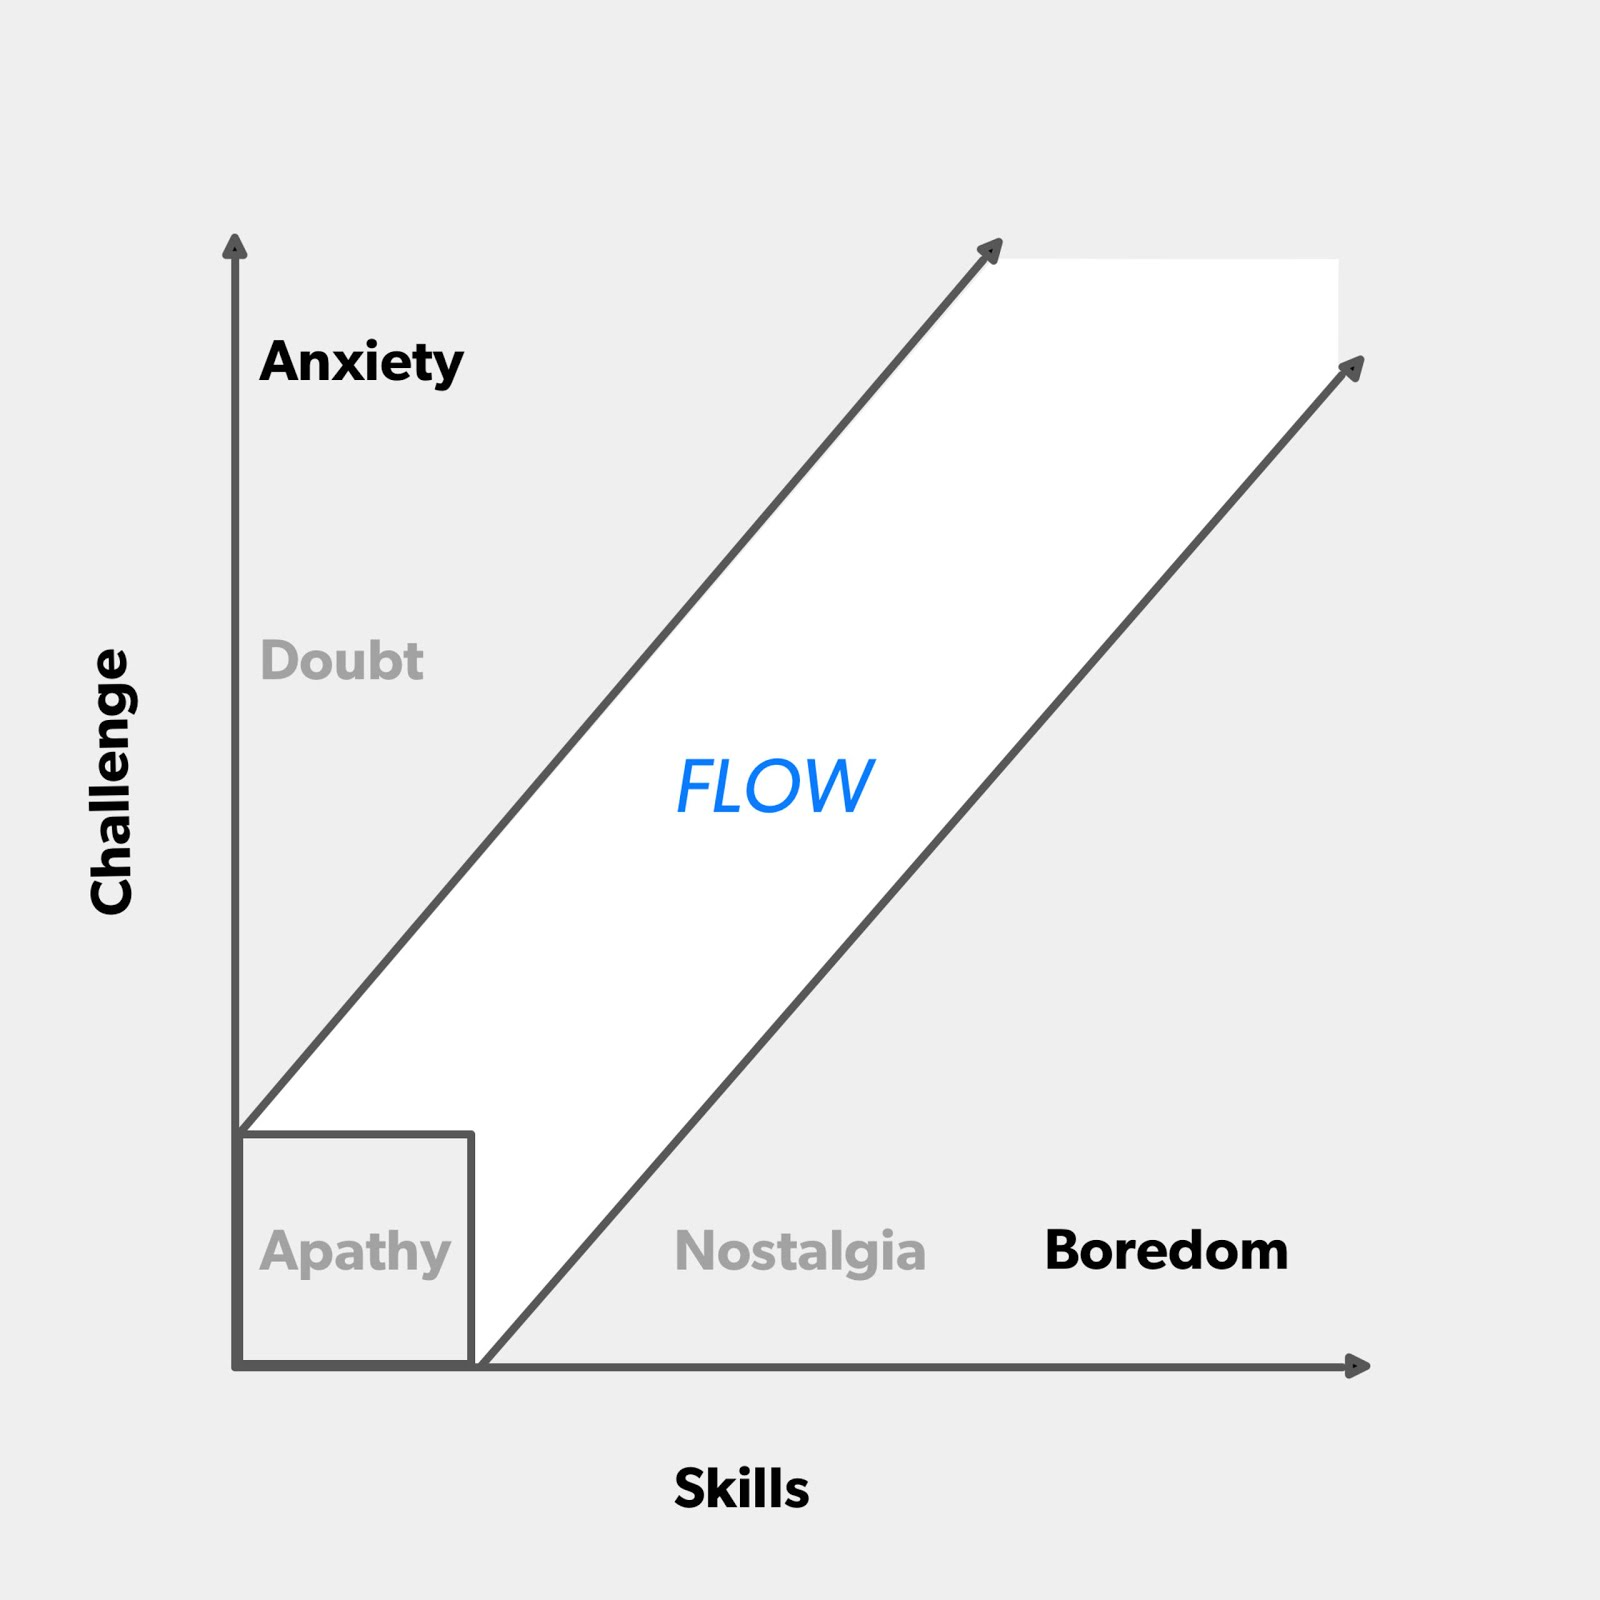 how to get into flow state